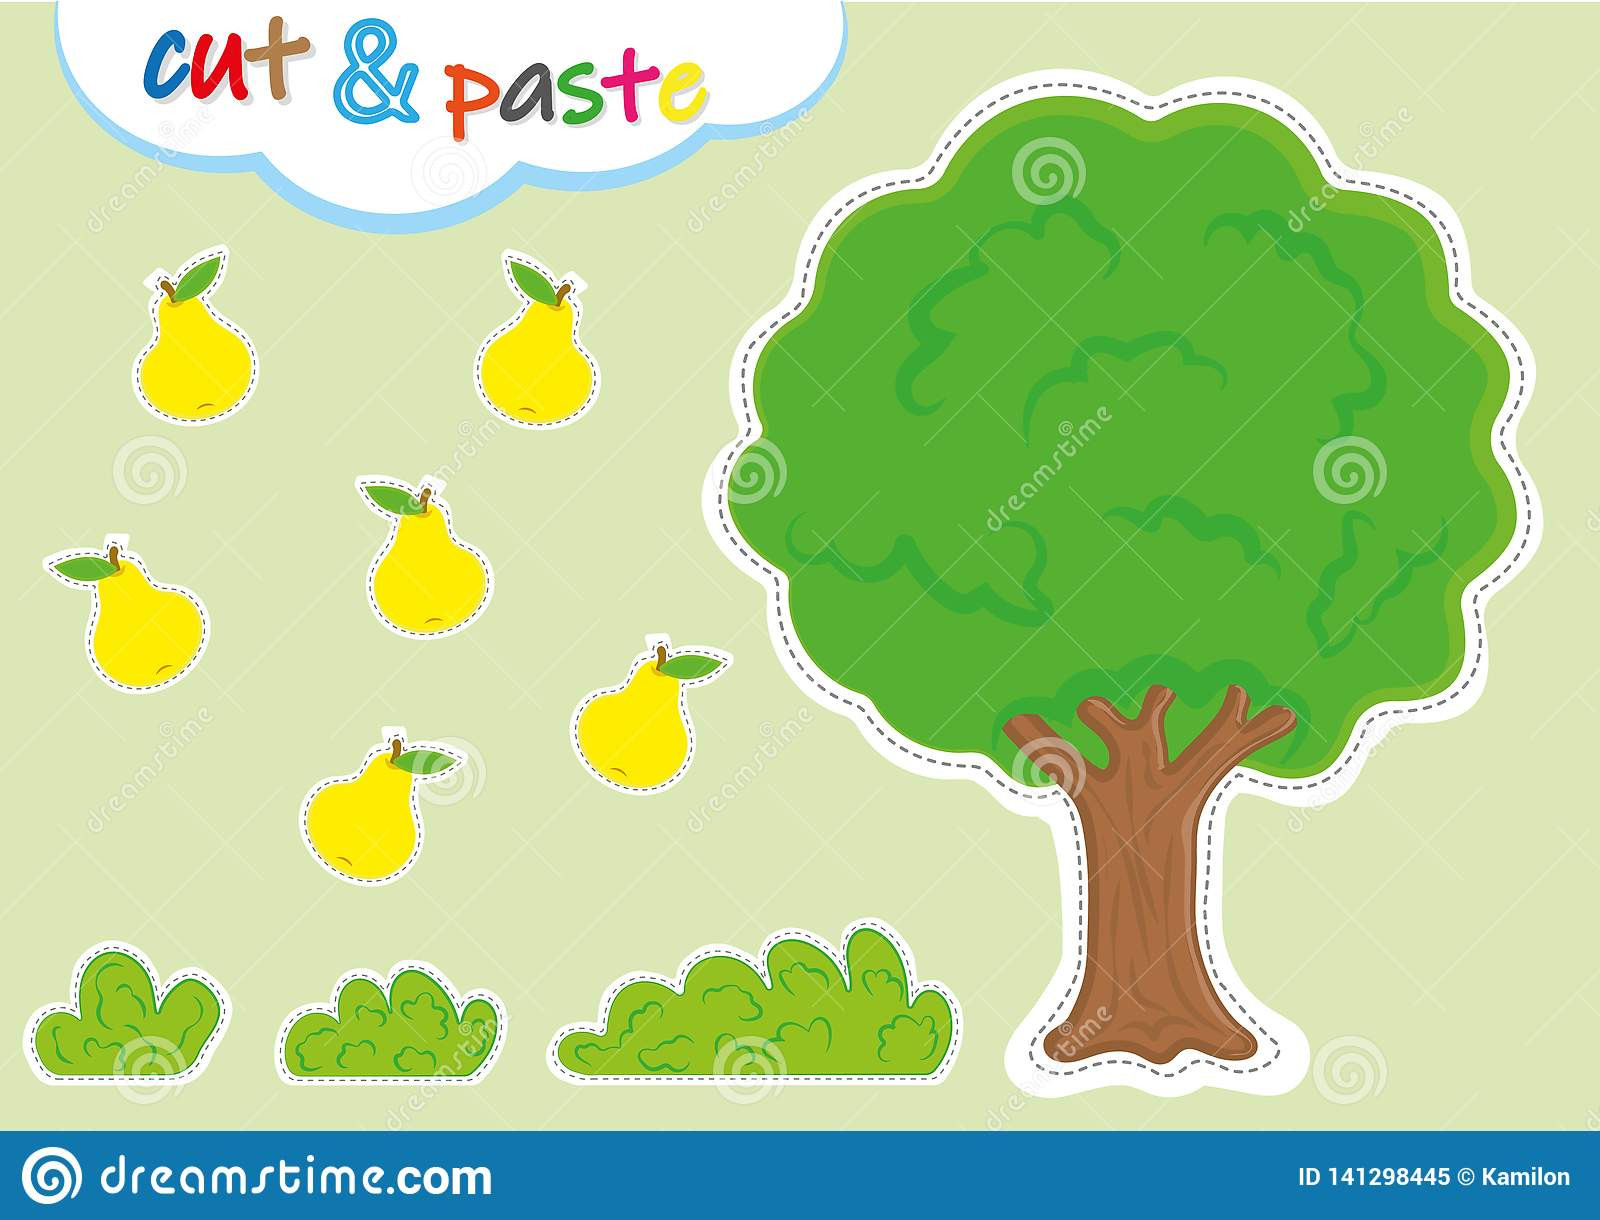 Printable Cut and Paste Worksheets Cut and Paste Activities for Kindergarten Preschool Cutting